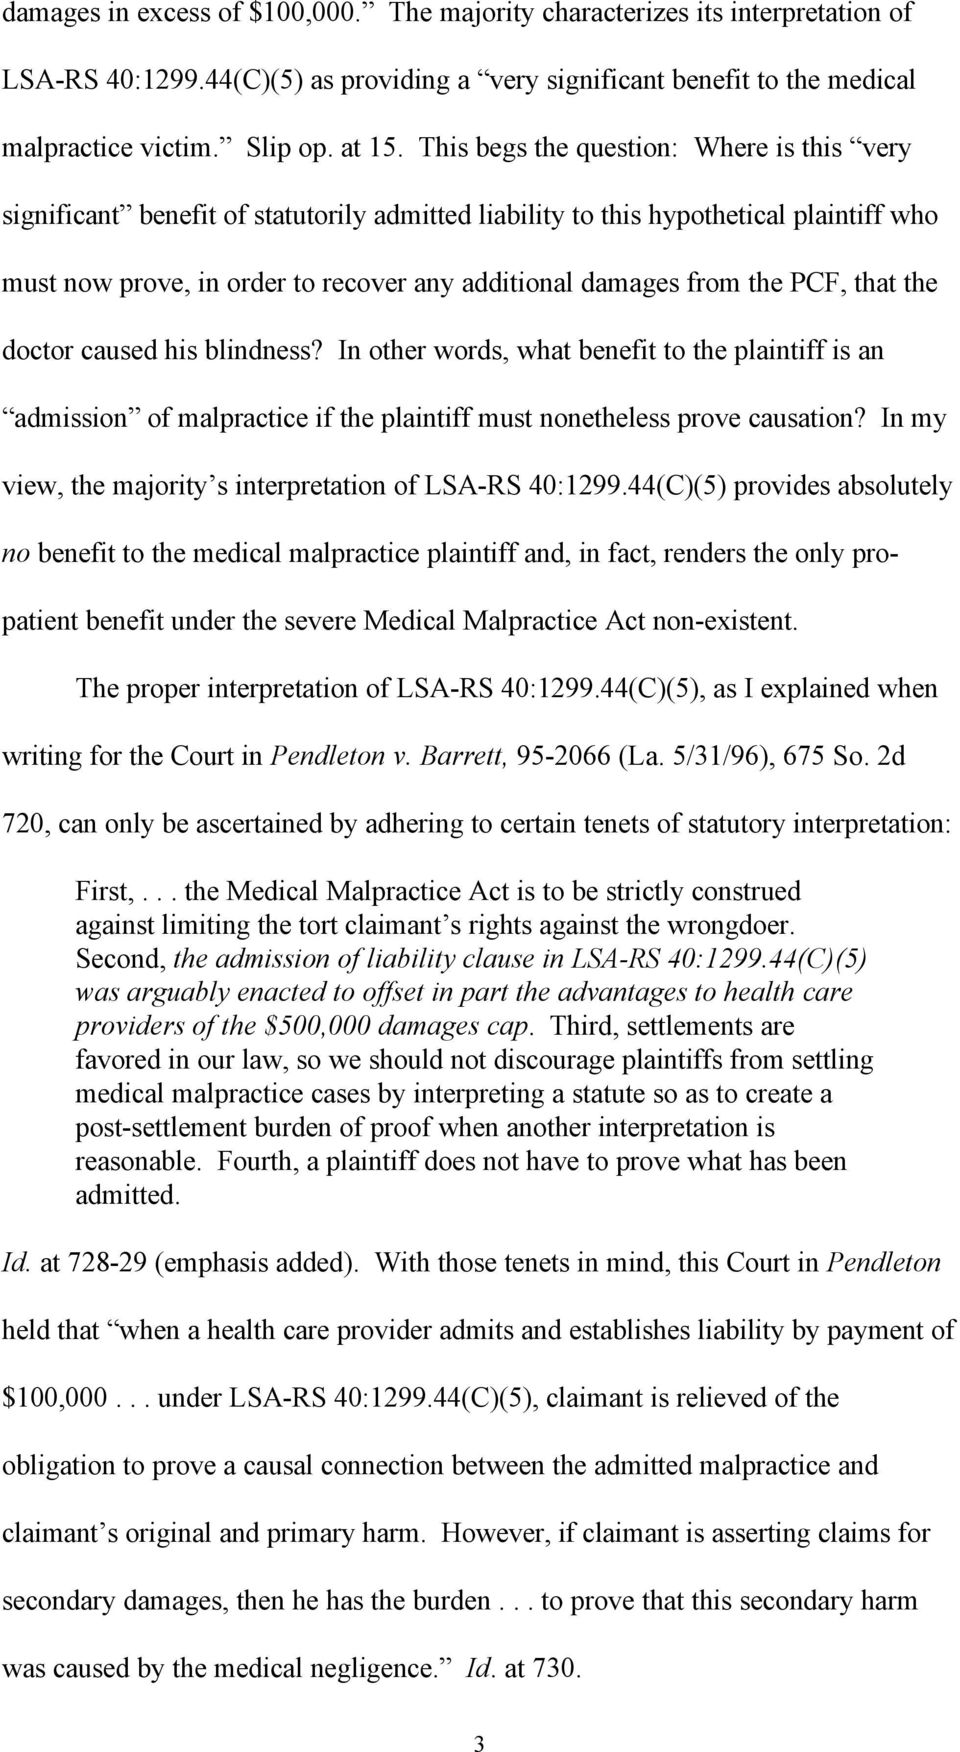 PCF, that the doctor caused his blindness? In other words, what benefit to the plaintiff is an admission of malpractice if the plaintiff must nonetheless prove causation?